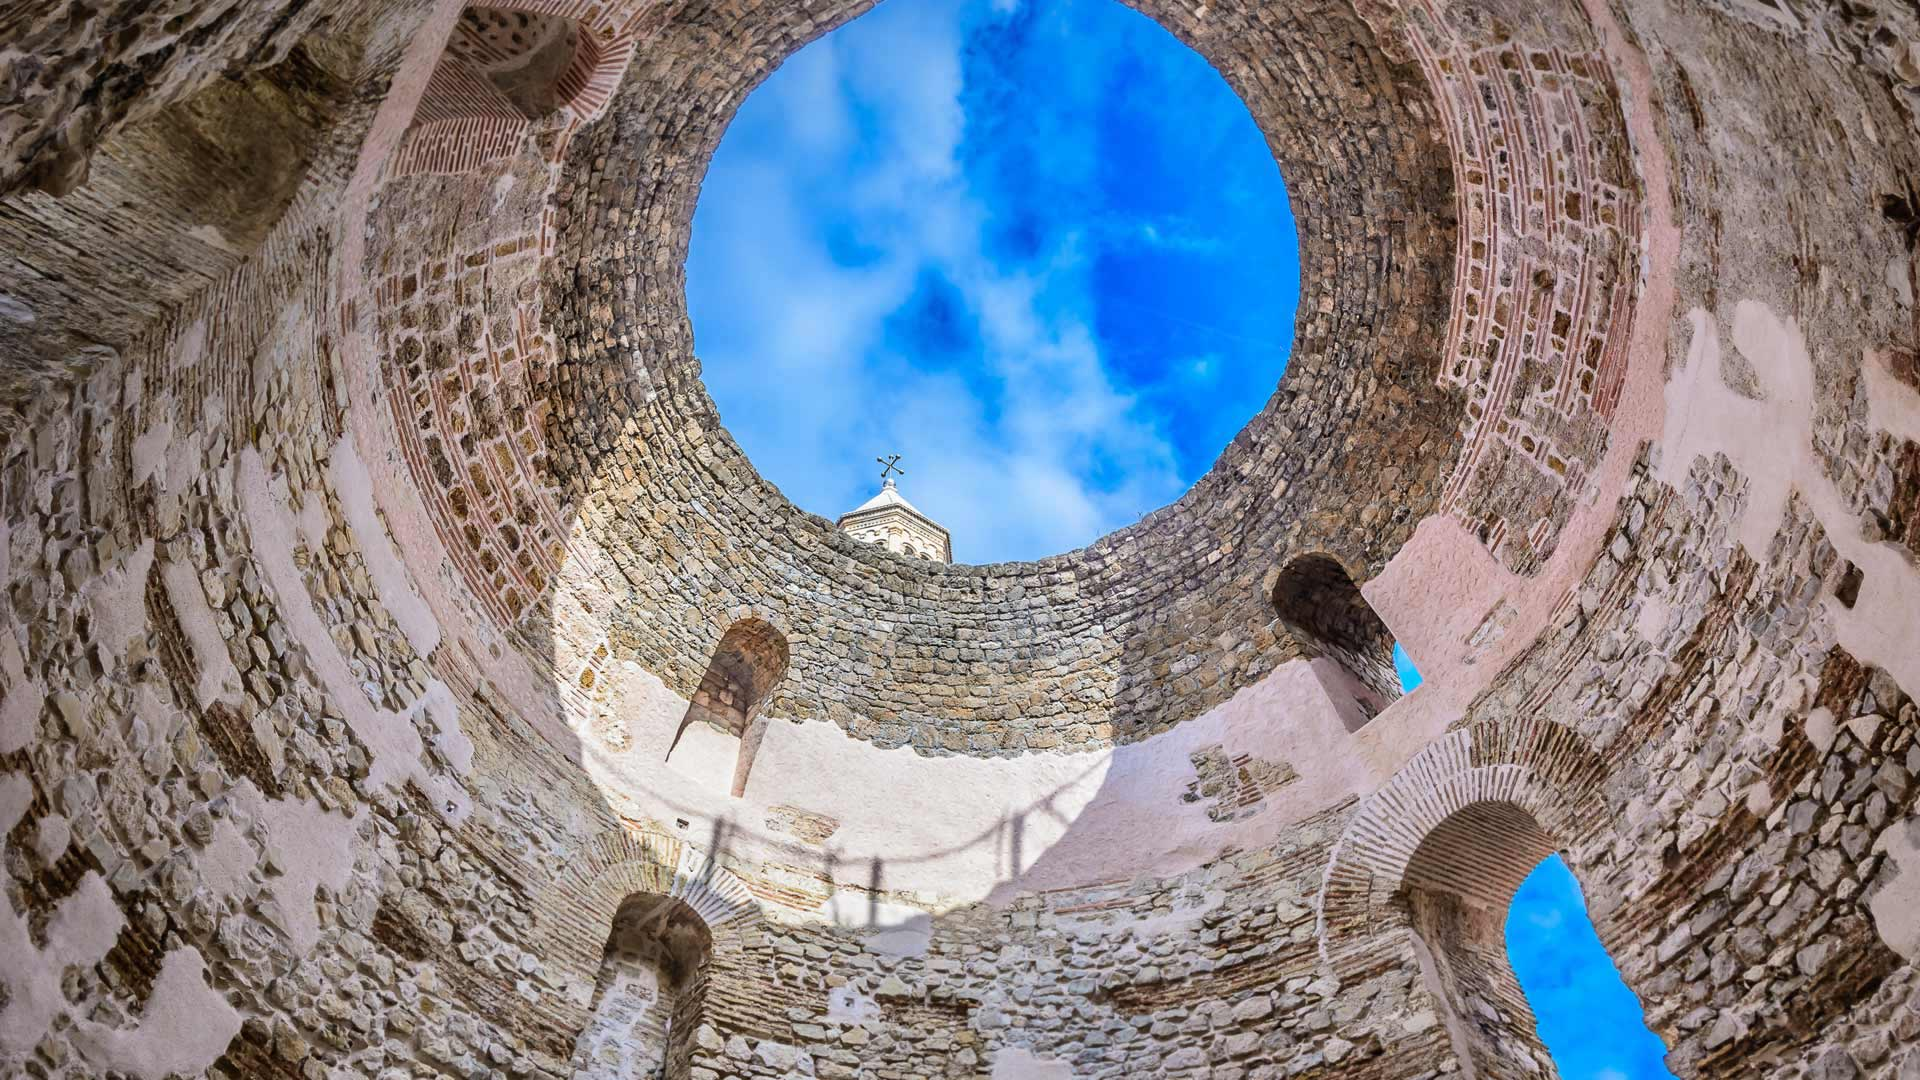 The Vestibule at Diocletian's Palace, Split, Croatia (© Dreamer4787/Shutterstock)